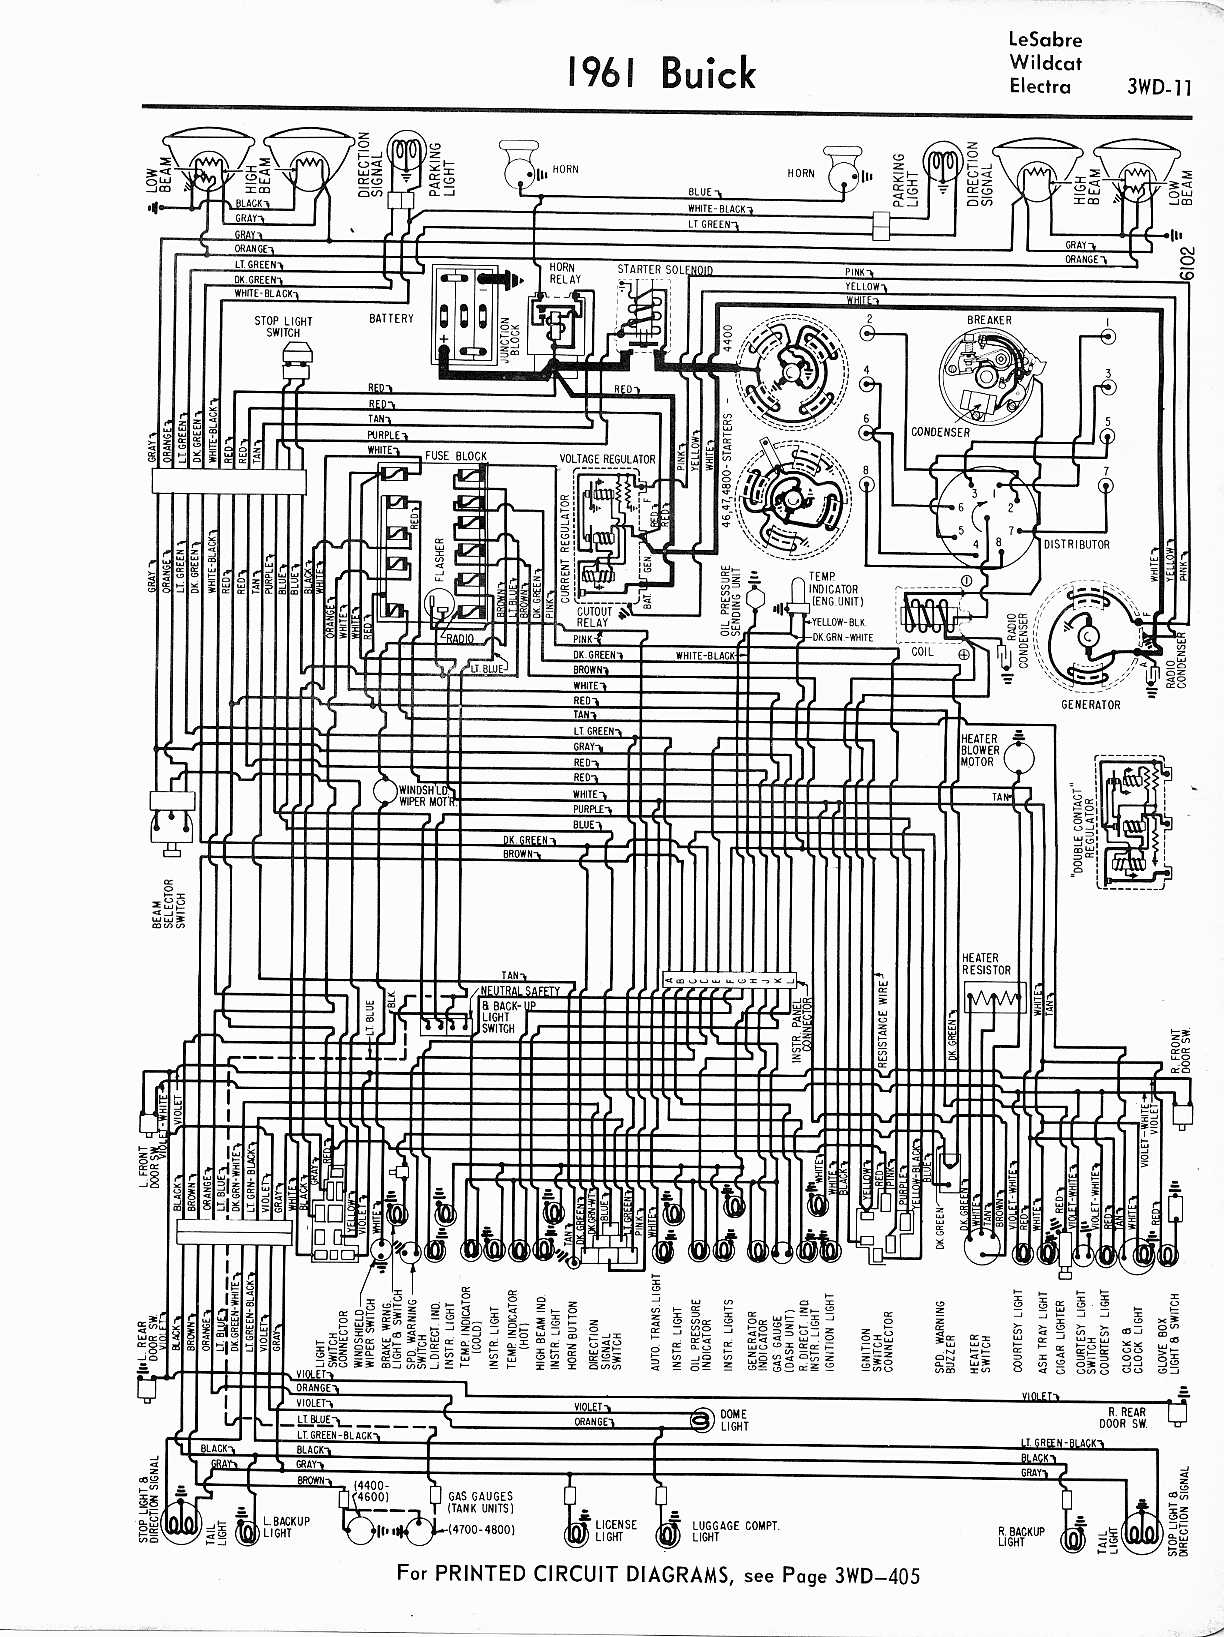 MWireBuic65_3WD 011 buick wiring diagrams 1957 1965 2002 buick regal wiring diagram at bayanpartner.co